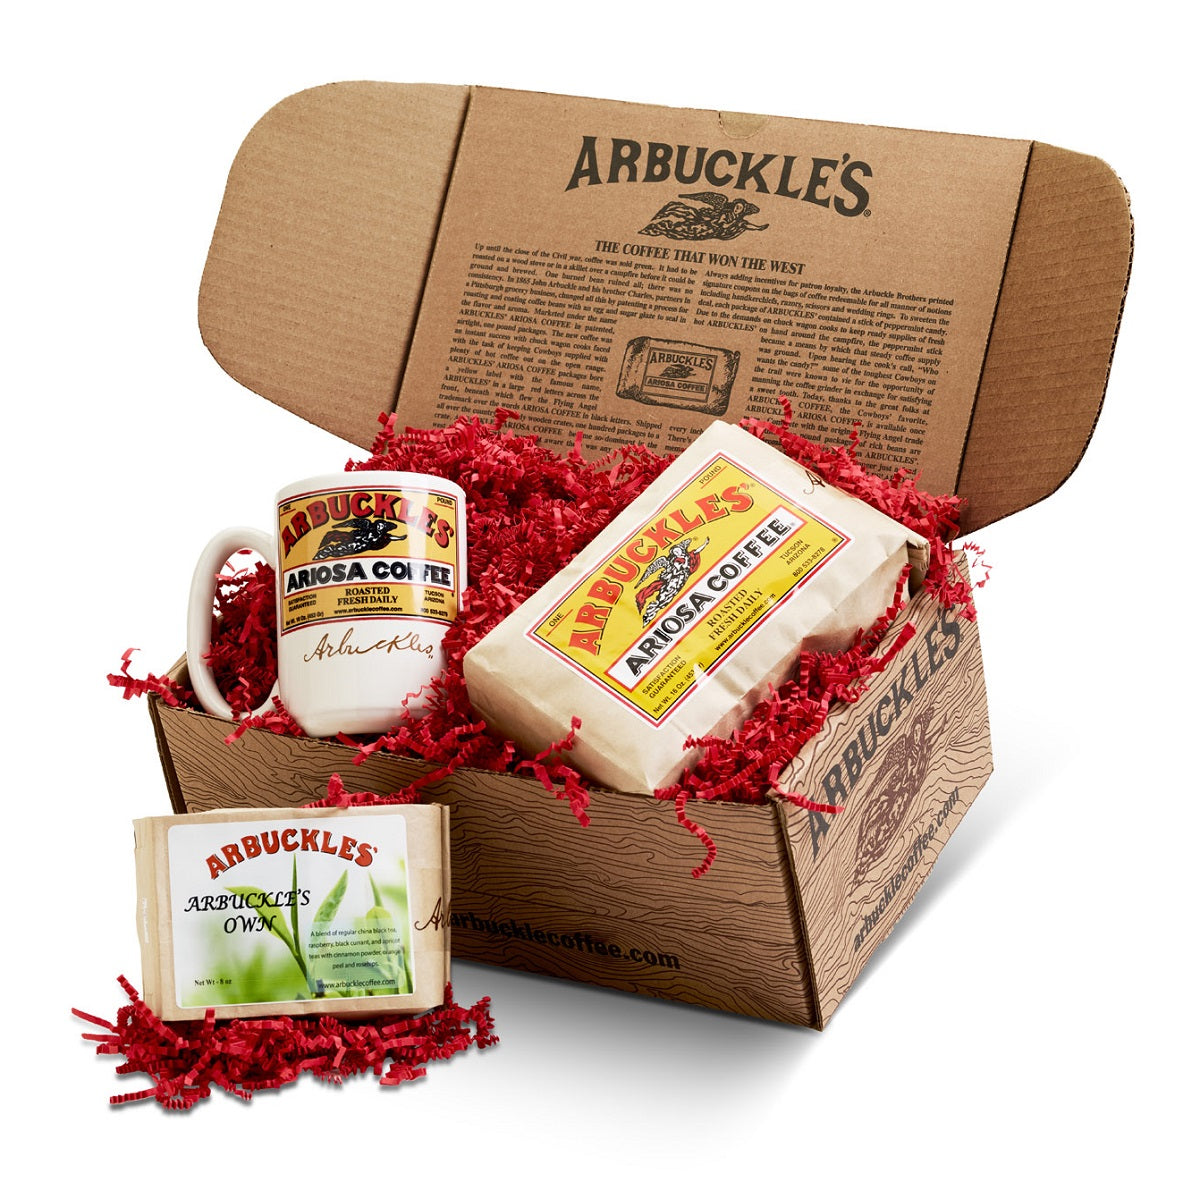 Ariosa, Mug & Arbuckle's Own Gift Box